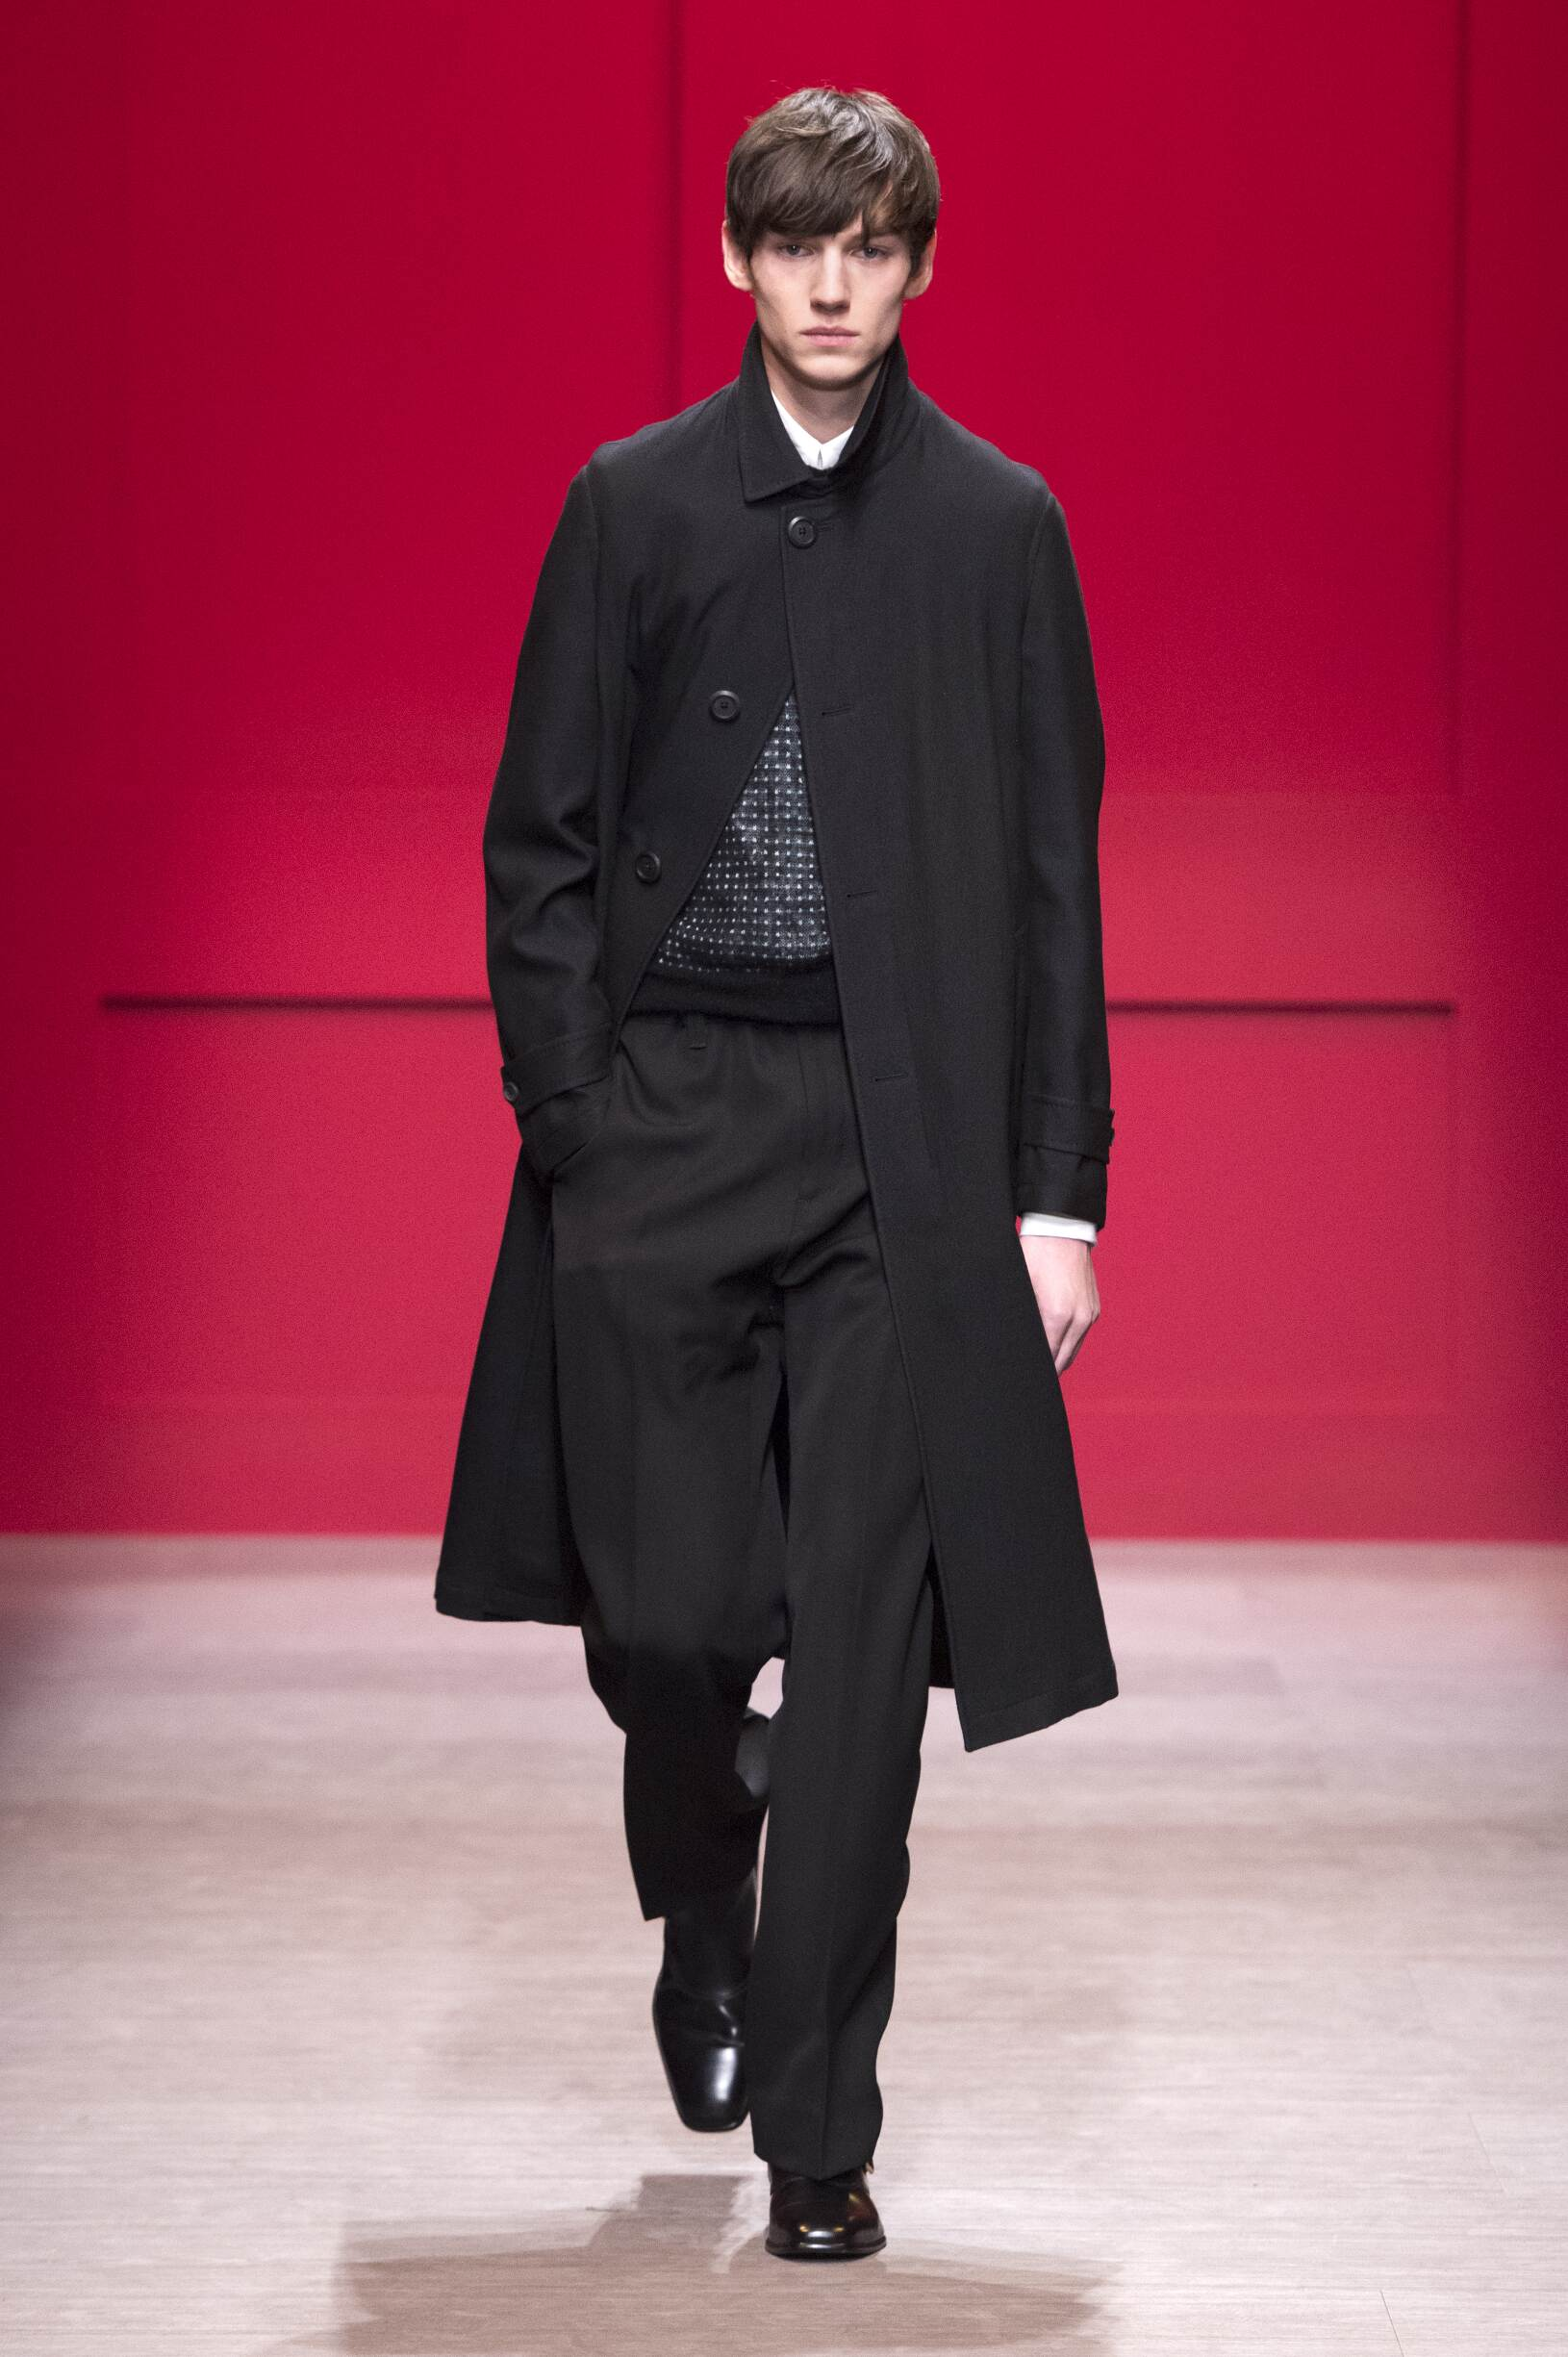 Runway Fall 2018-19 Menswear Salvatore Ferragamo